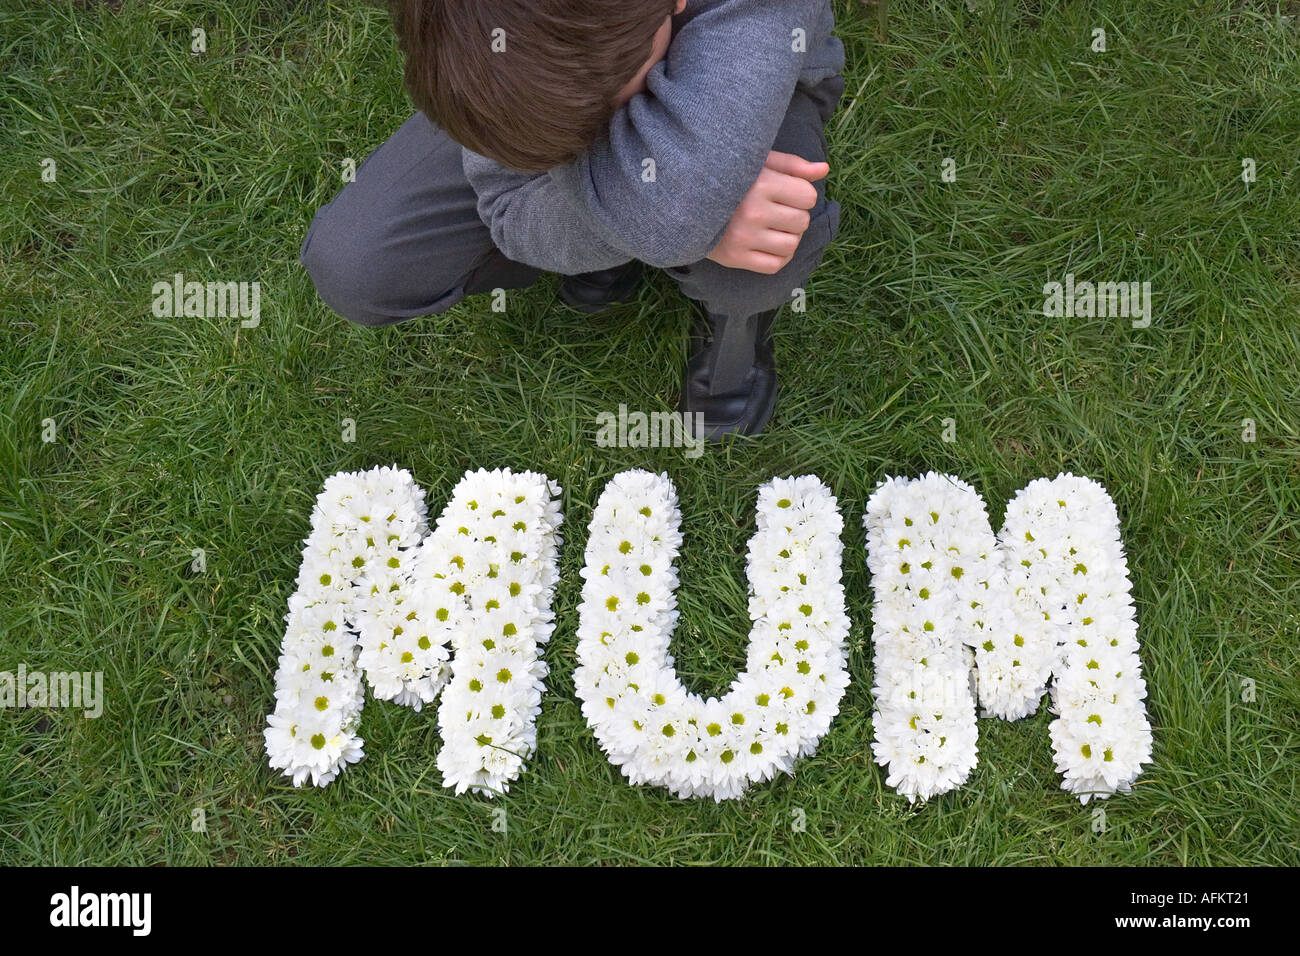 Funeral flowers mum stock photos funeral flowers mum stock images young boy kneeling down beside his mothers funeral flowers stock image izmirmasajfo